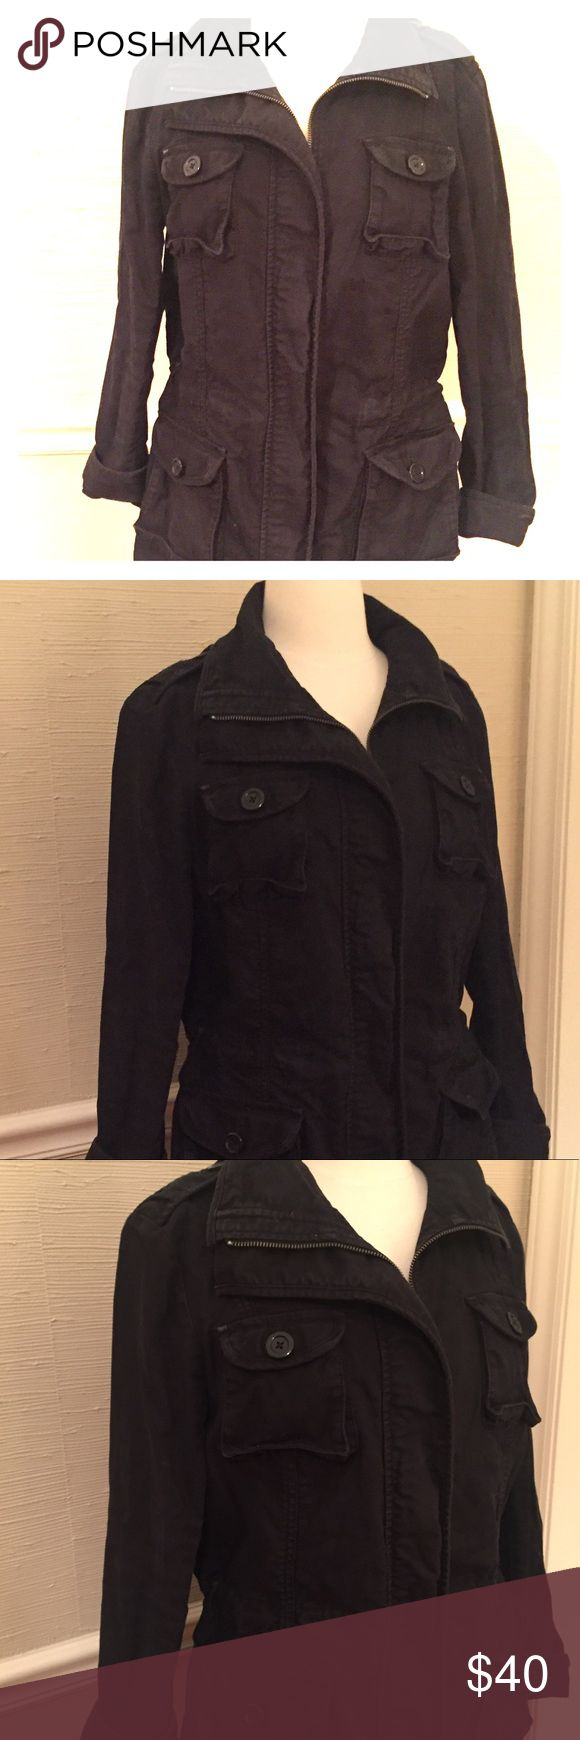 Gap Distressed Black Fleet Jacket Distressed black fleet jacket from Gap.  Size Medium and minimally worn.  Perfect spring layer for chillier mornings or evenings.  Multiple pockets and waist has a tie to cinch in for a more defining waist. GAP Jackets & Coats Utility Jackets